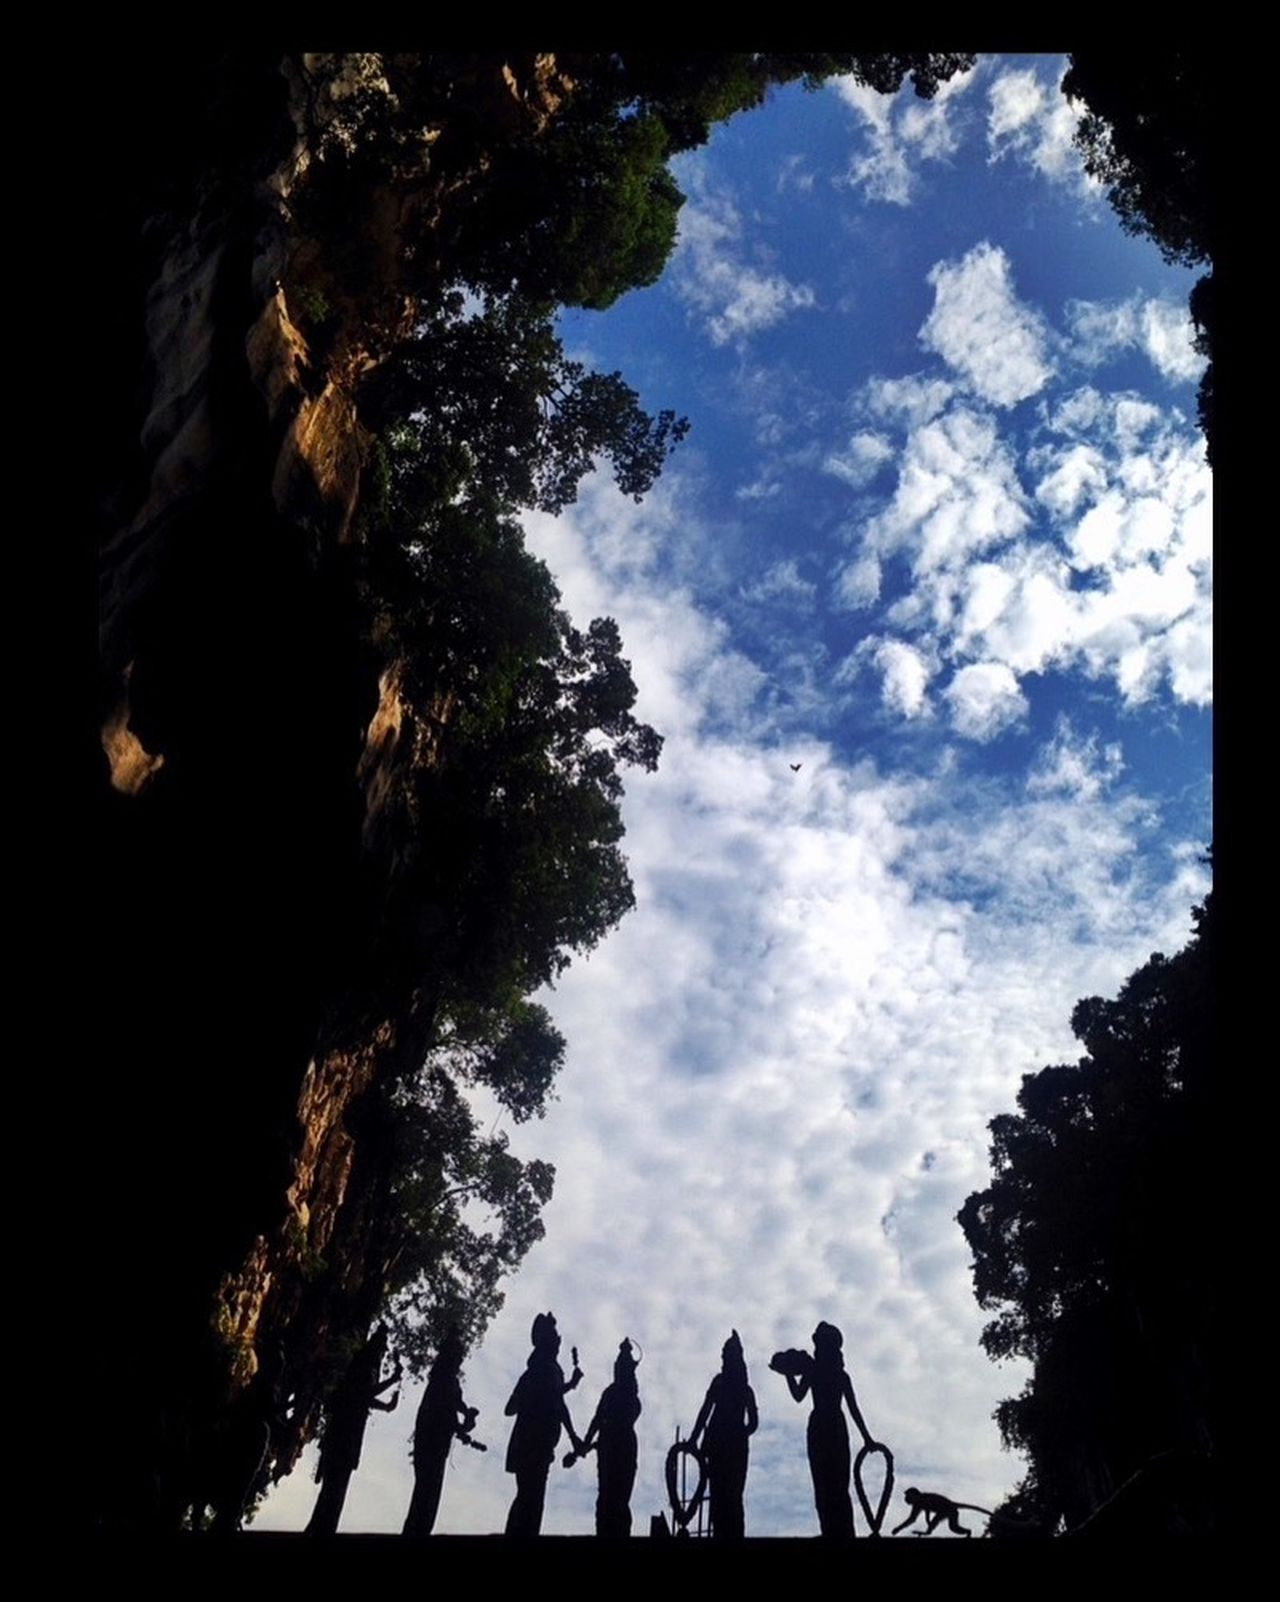 Batu Caves -Malaysia Batu Caves Temple Temple - Building Hindu Temple Kuala Lumpur Sillouette Statue Monkey Monkeys Clouds And Sky Clouds Cave Trees Trees And Sky Sky Blue Sky Mountains Dramatic Angles Iphone 5 IPhoneography Iphoneonly IPhone Eyeemphoto TakeoverContrast